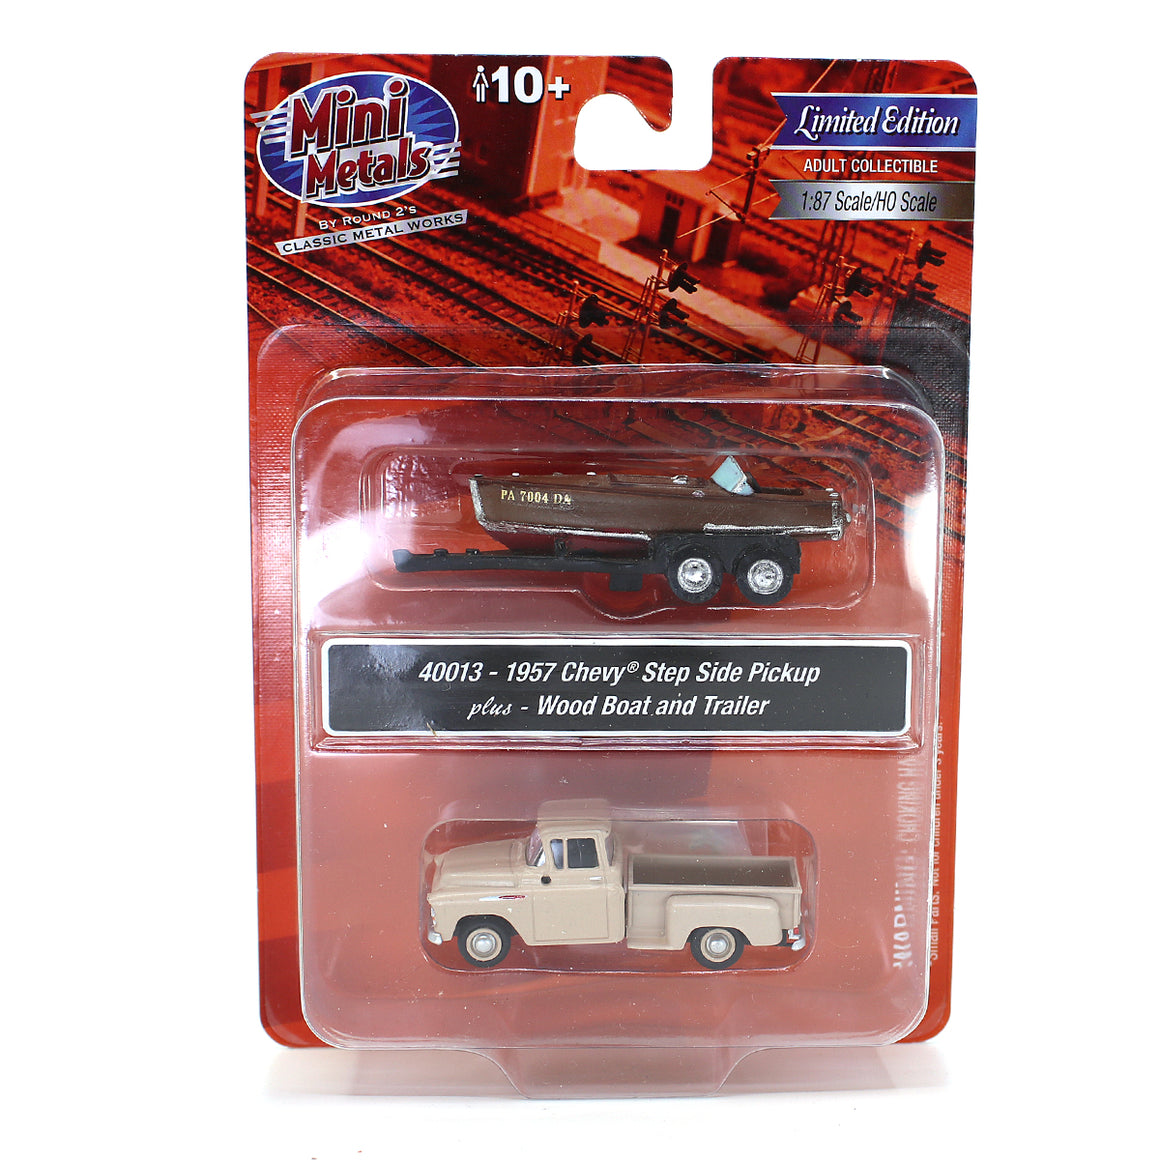 HO Scale: 1957 Chevrolet Stepside Pickup w/ Speedboat and Trailer